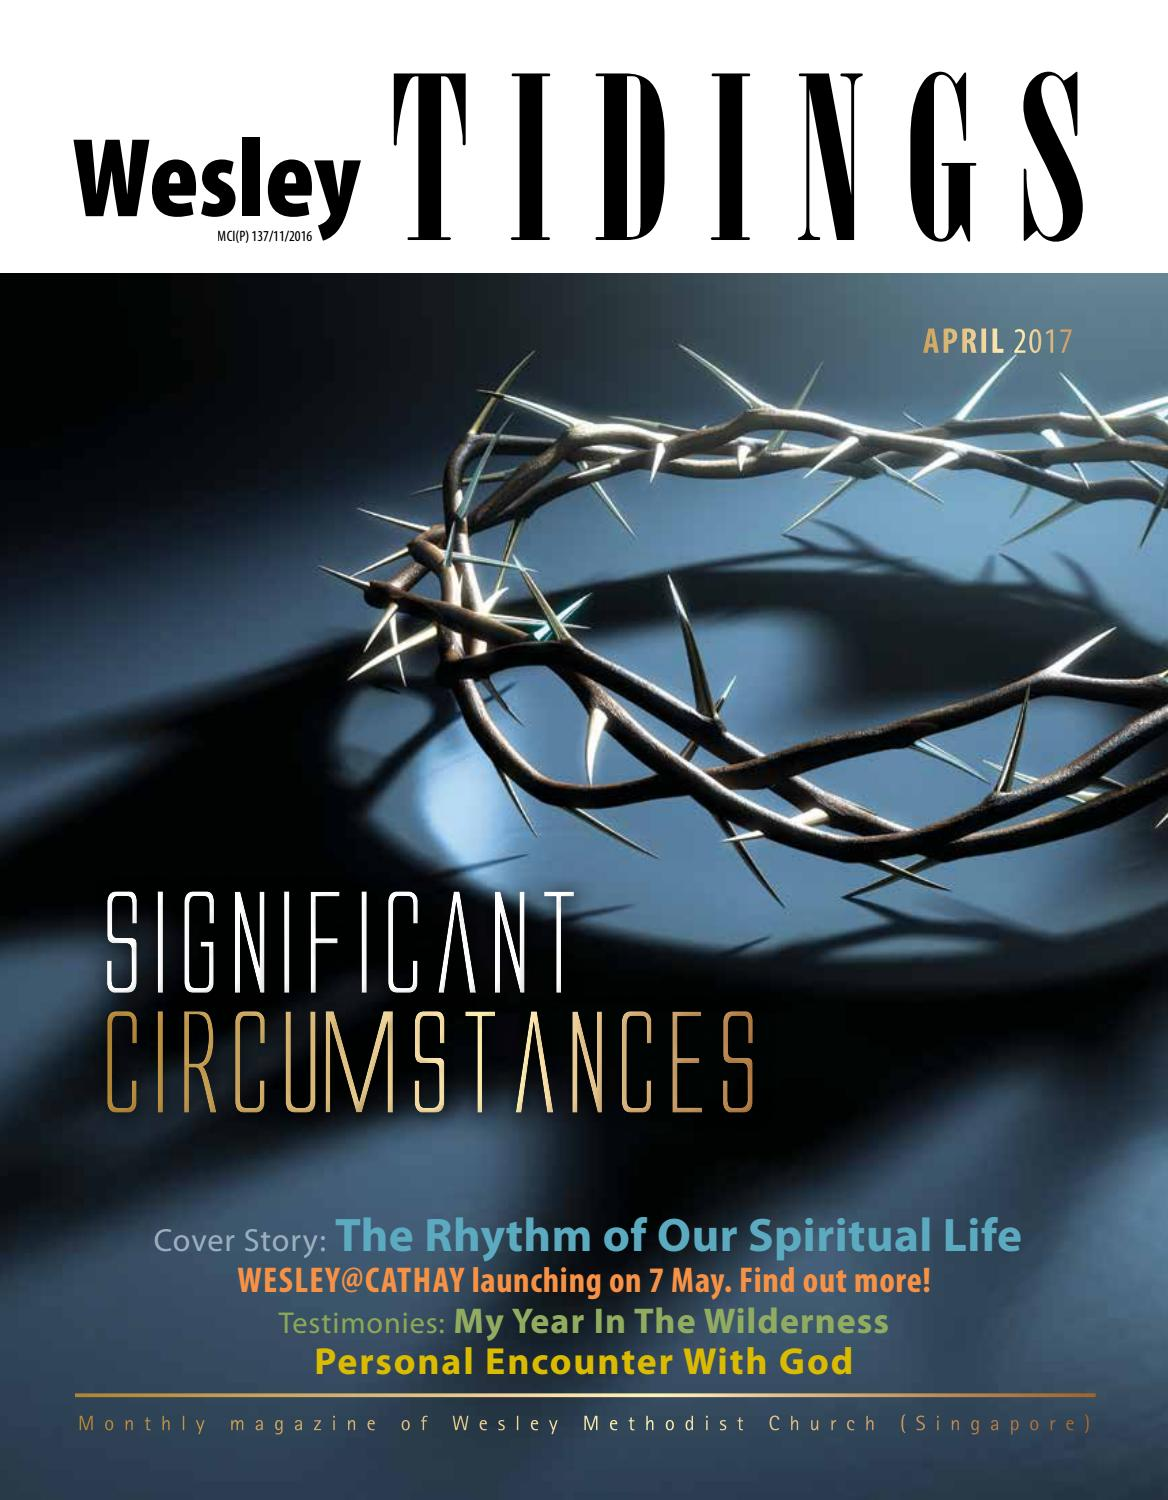 Wesley Tidings Newsletter April 2017 by Wesley Methodist Church, Singapore - issuu